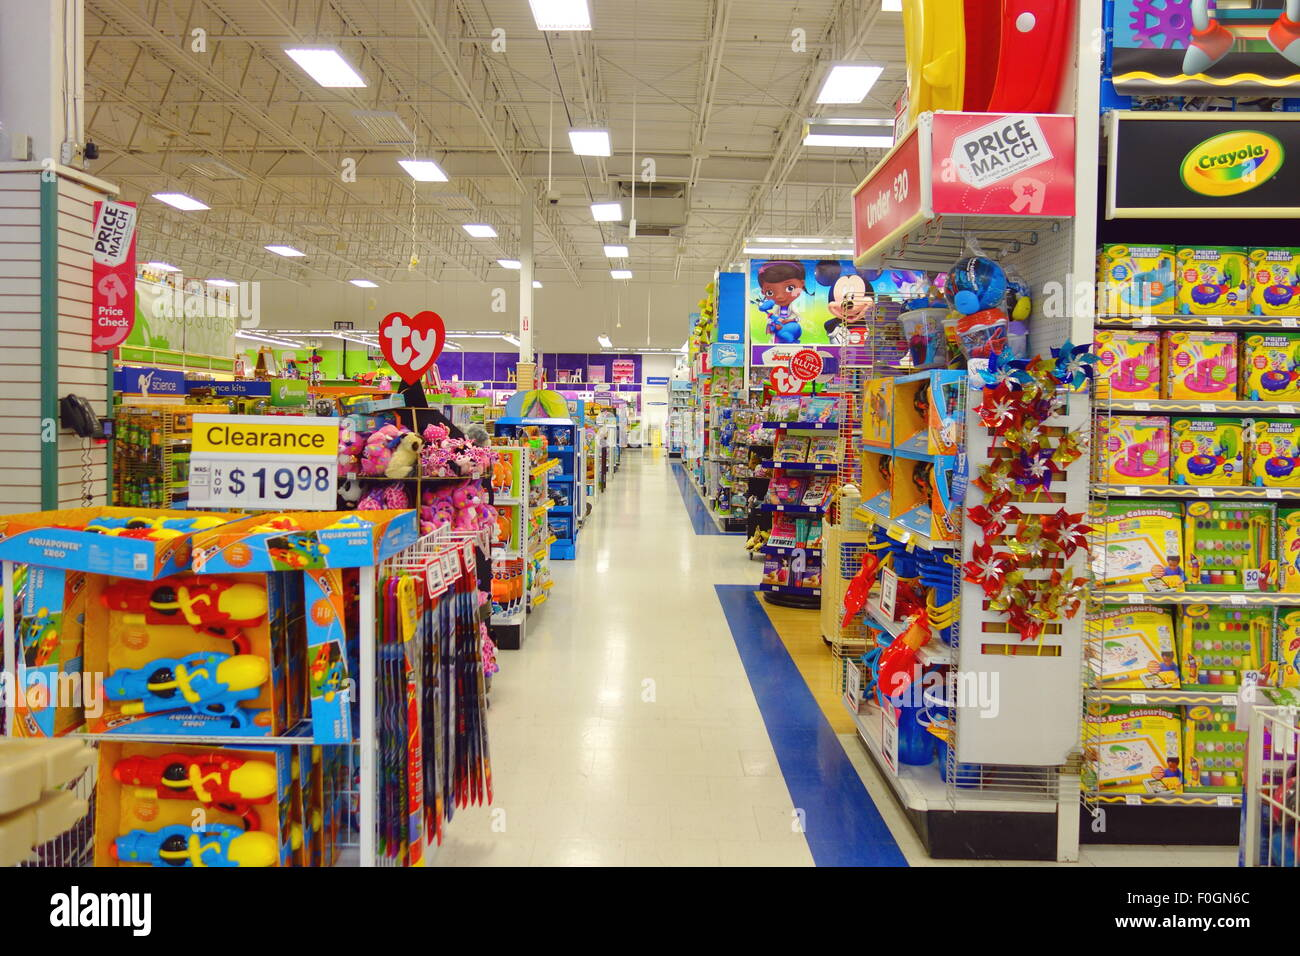 Toys R Us Store In Toronto Canada Stock Photo 86419716 Alamy